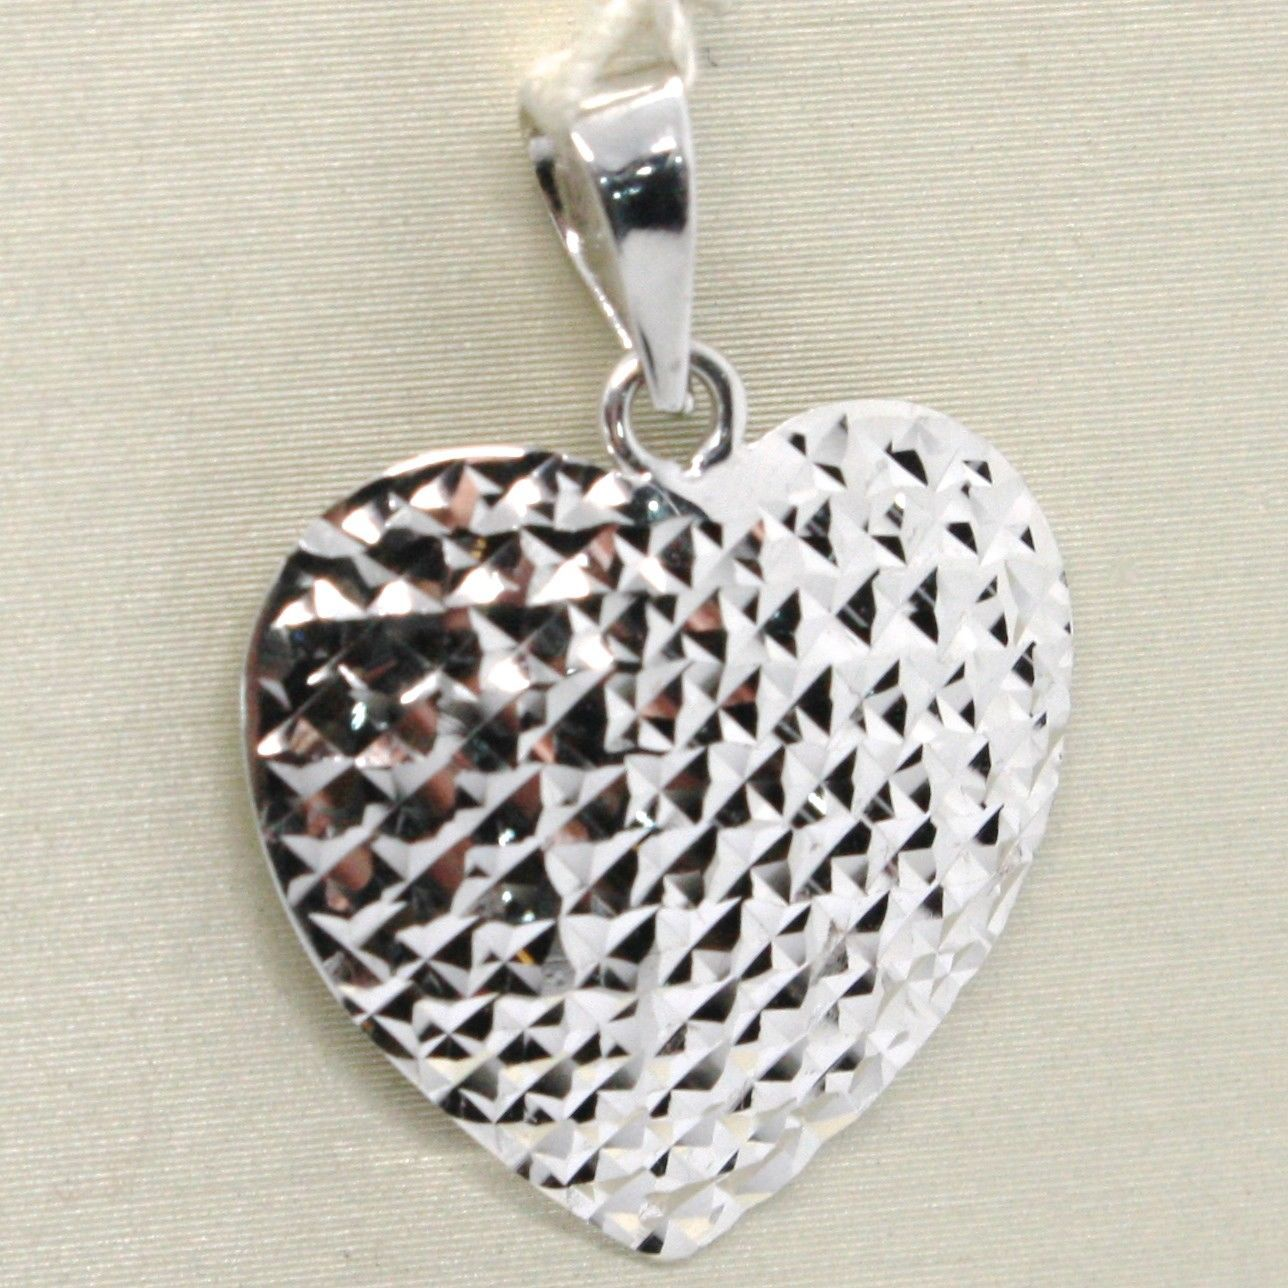 18K WHITE GOLD HEART PENDANT, CHARMS, FINELY WORKED, CURVED, MADE IN ITALY